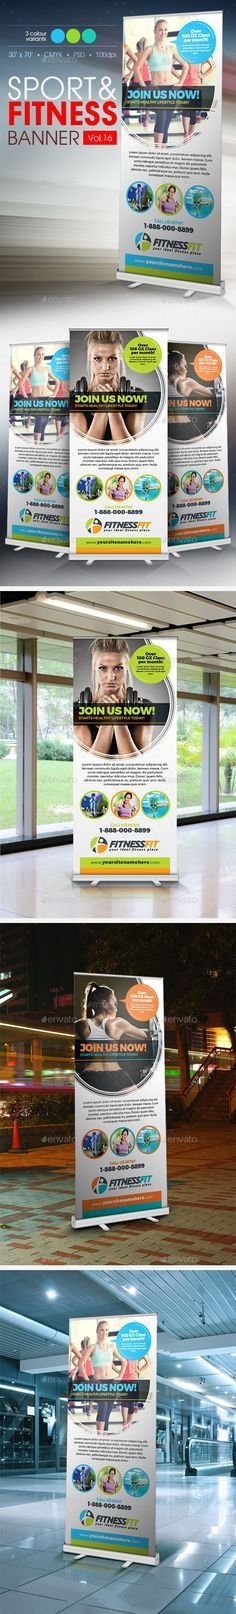 Doctor Billboard Roll-Up Template | Print templates, Signage and ...